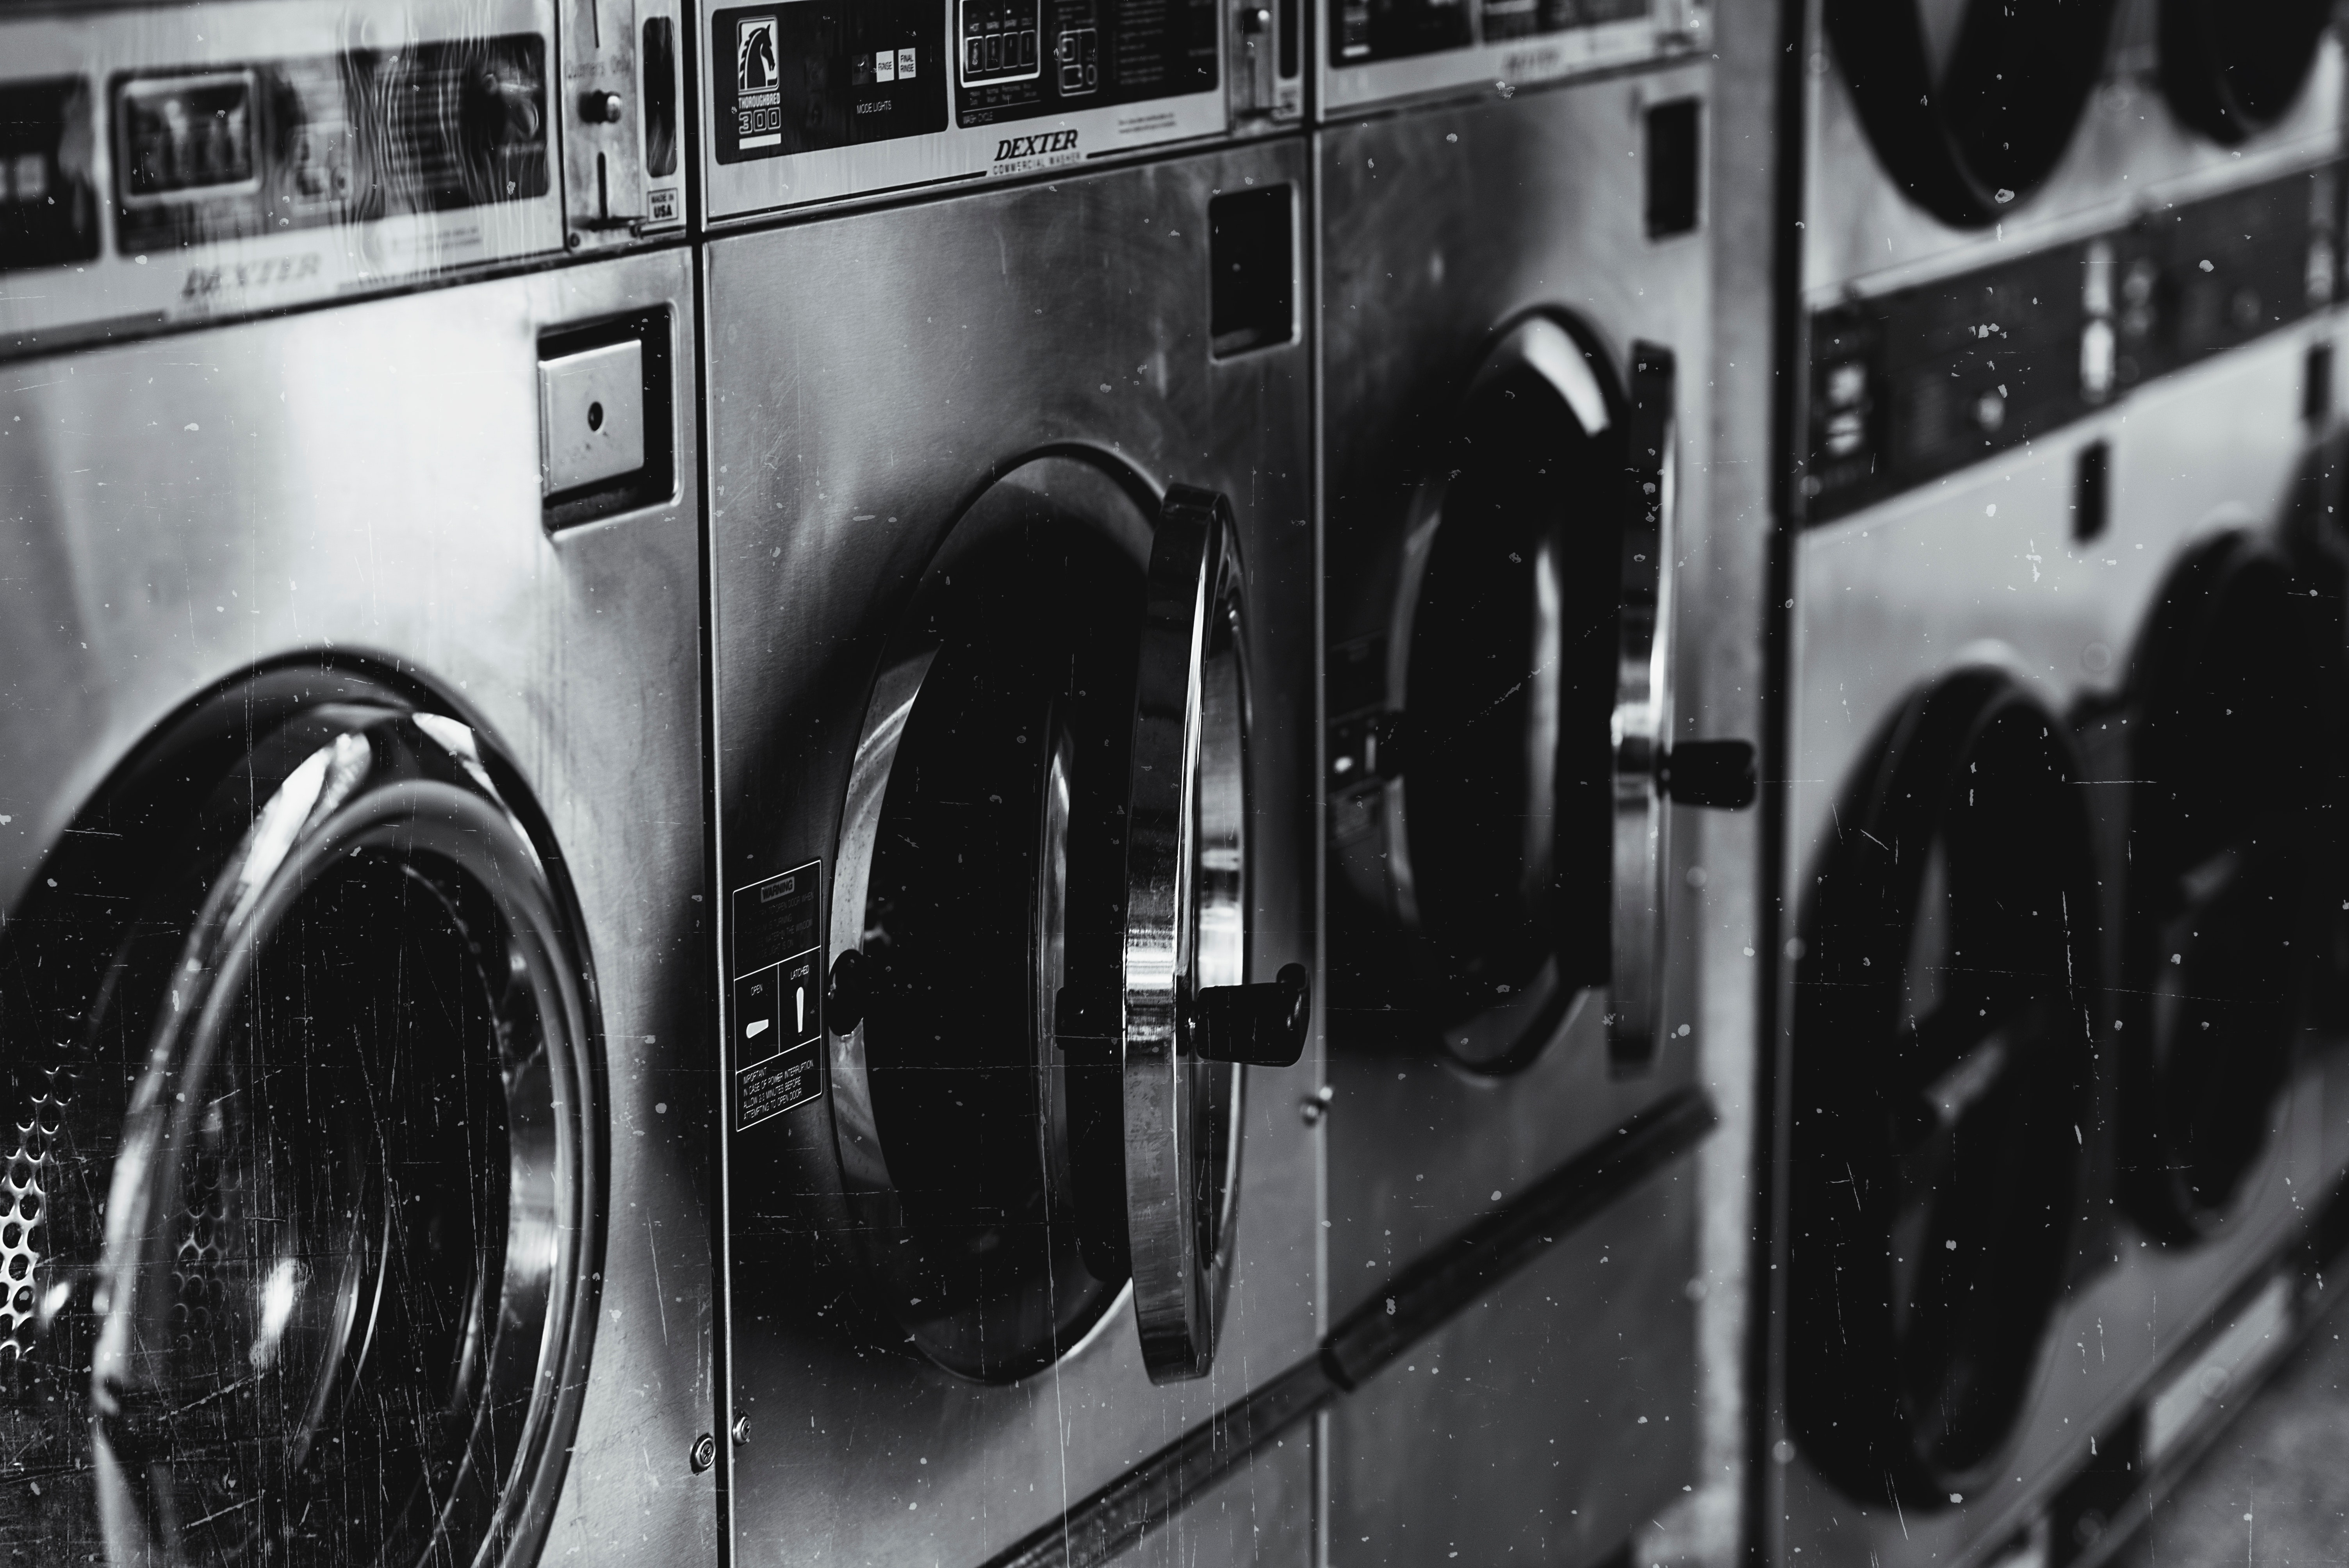 reducing the costs of your laundry business